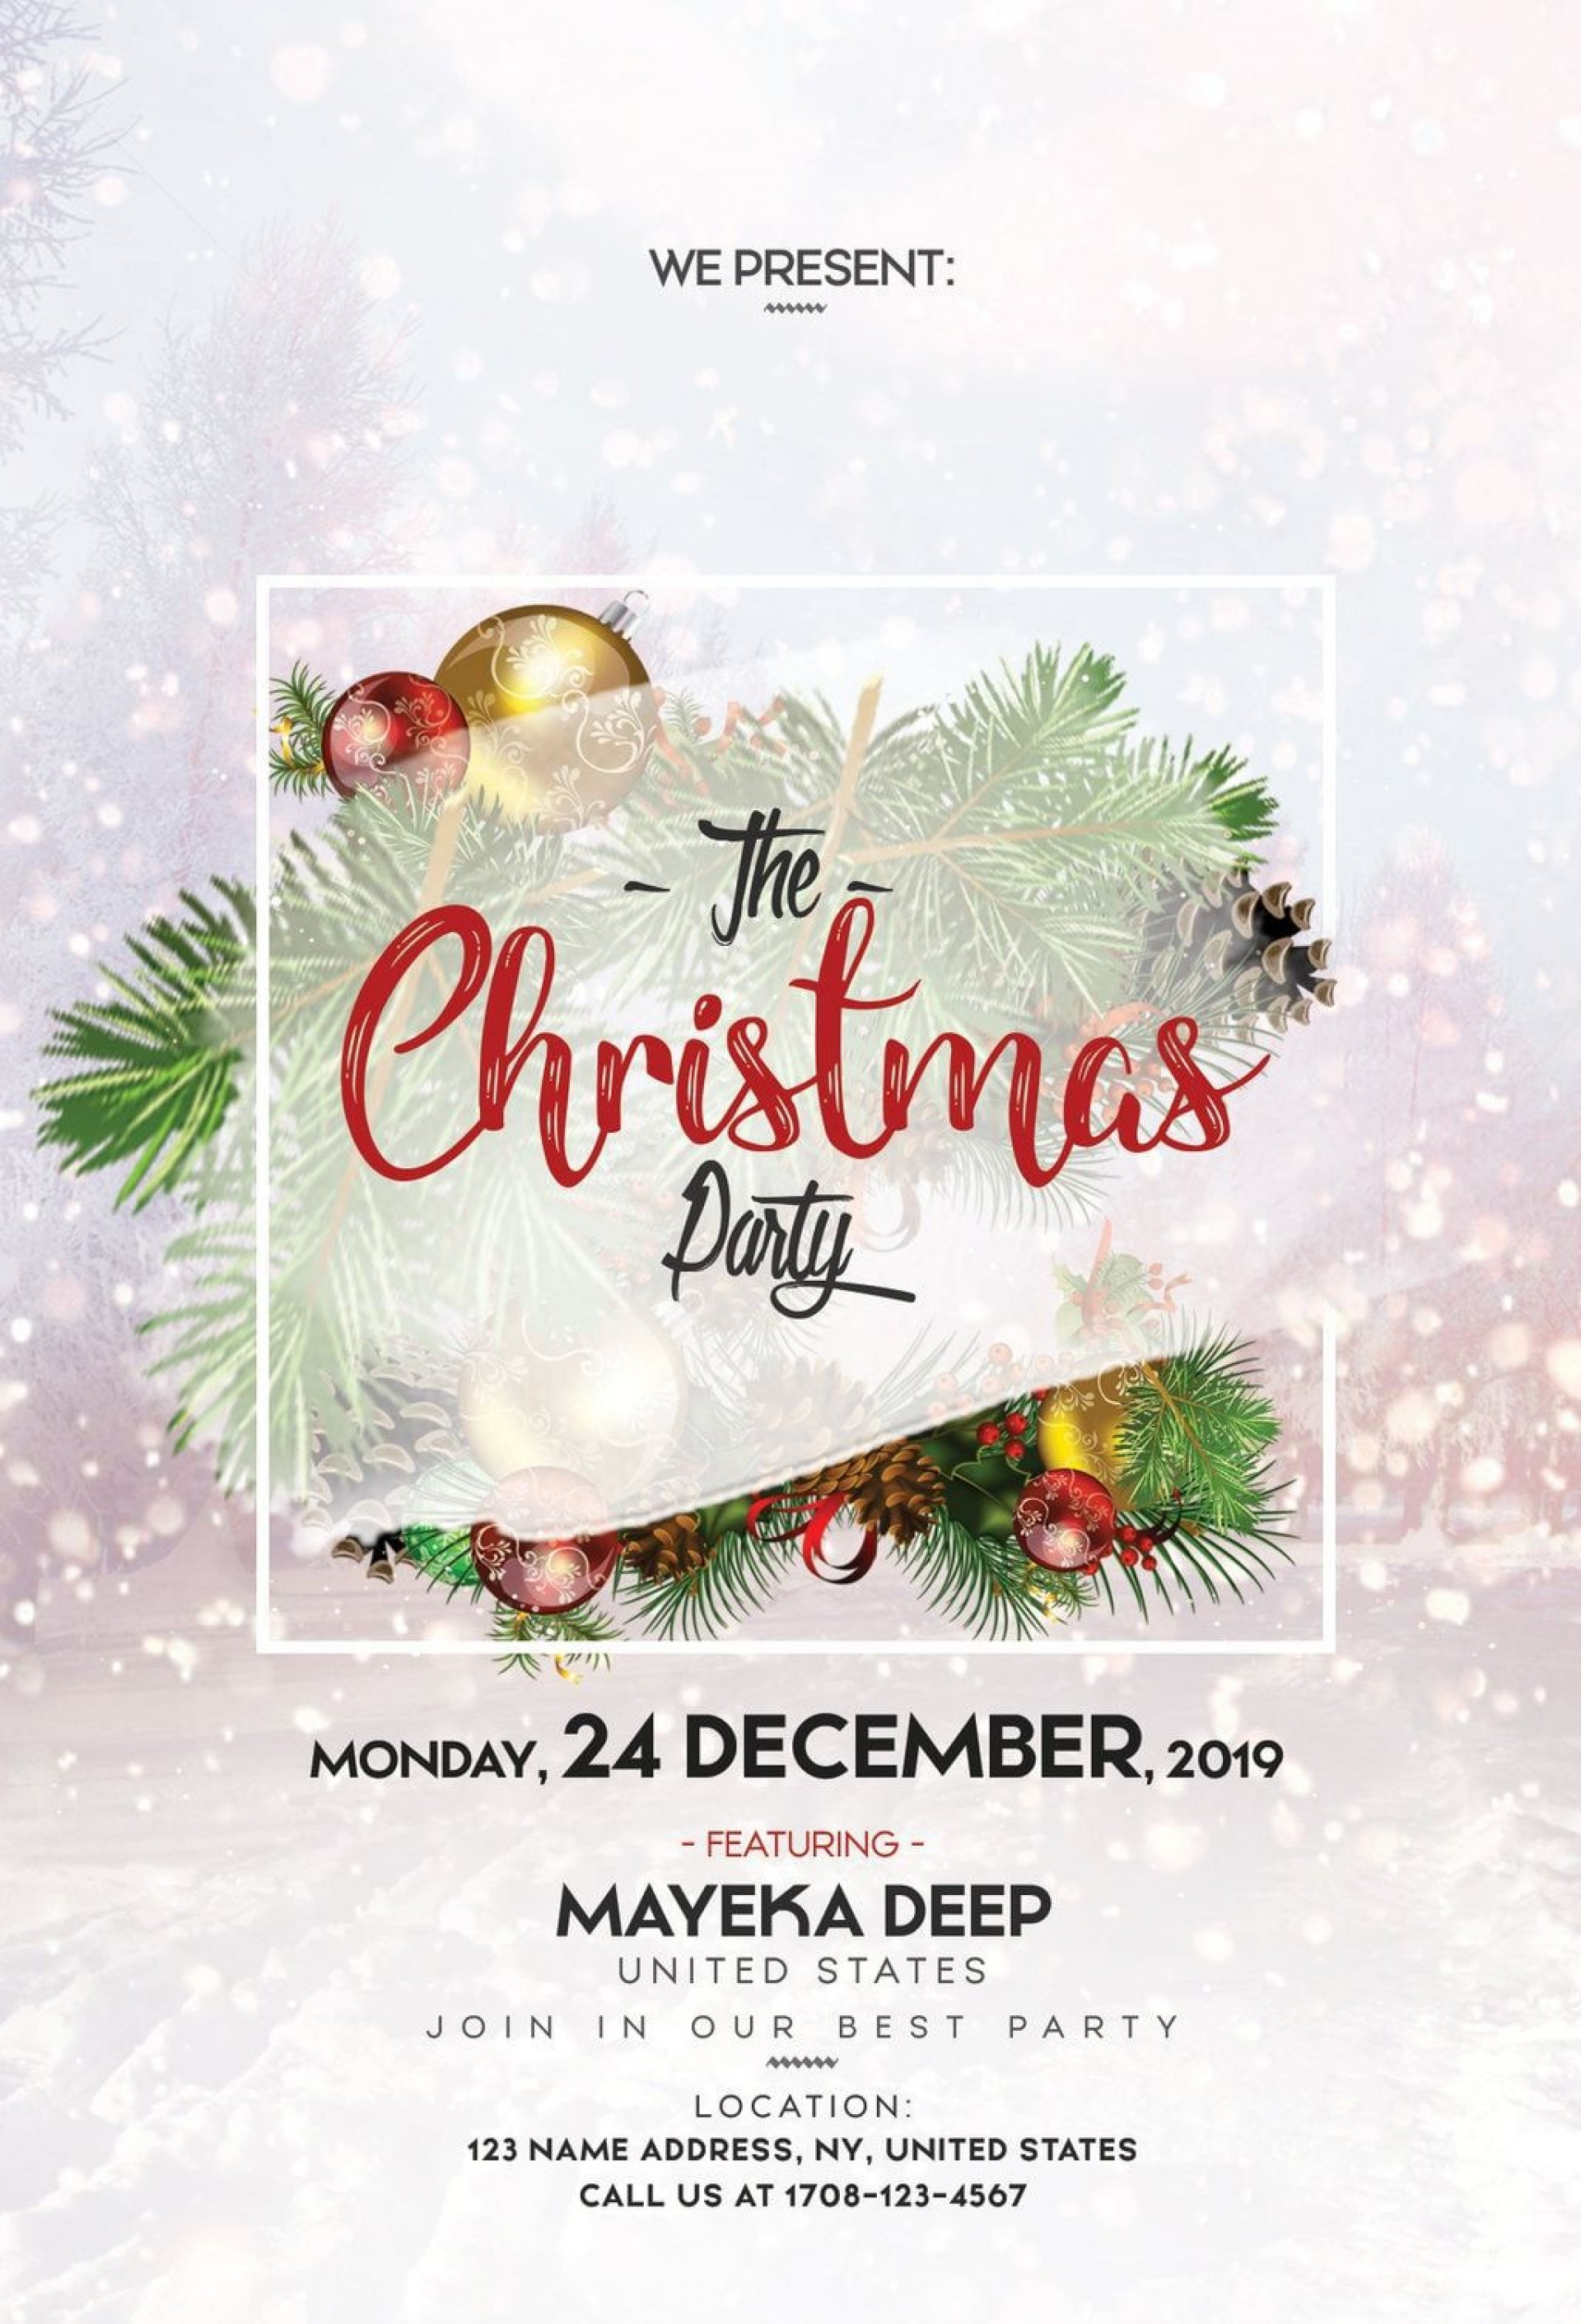 004 Staggering Free Christma Poster Template High Def  Templates Psd Download Design Word1920